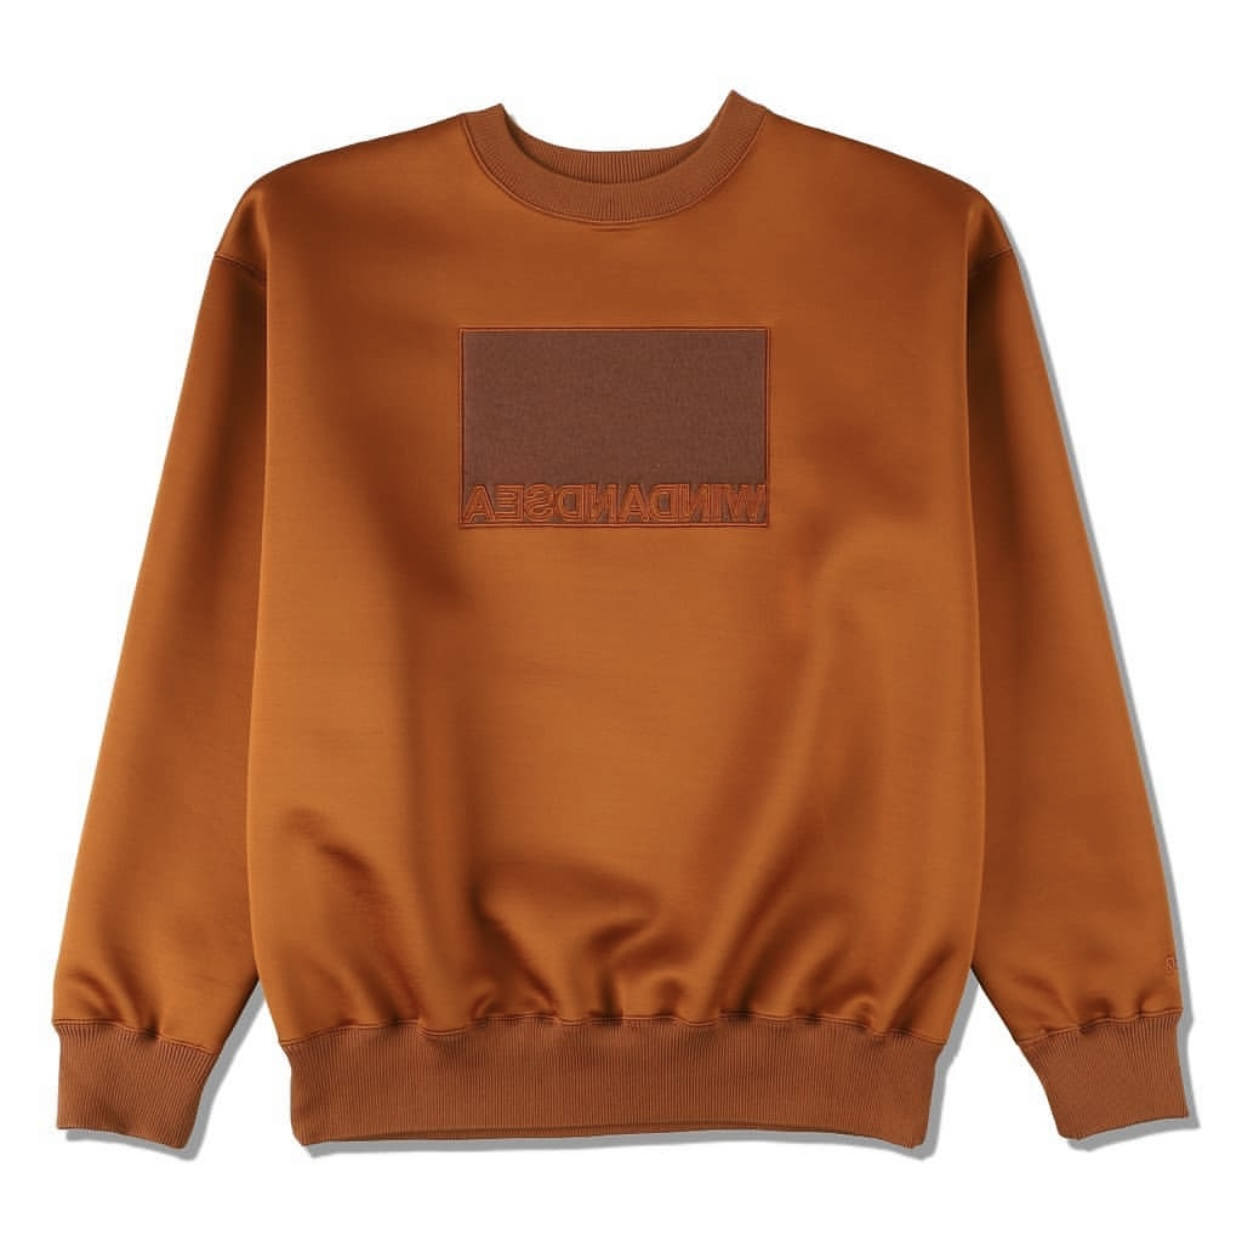 WIND AND SEA 新作スウェット発売 11月21日 WDS BOX CBK SWEAT TOPS BROWN WDS-20A-TPS-04